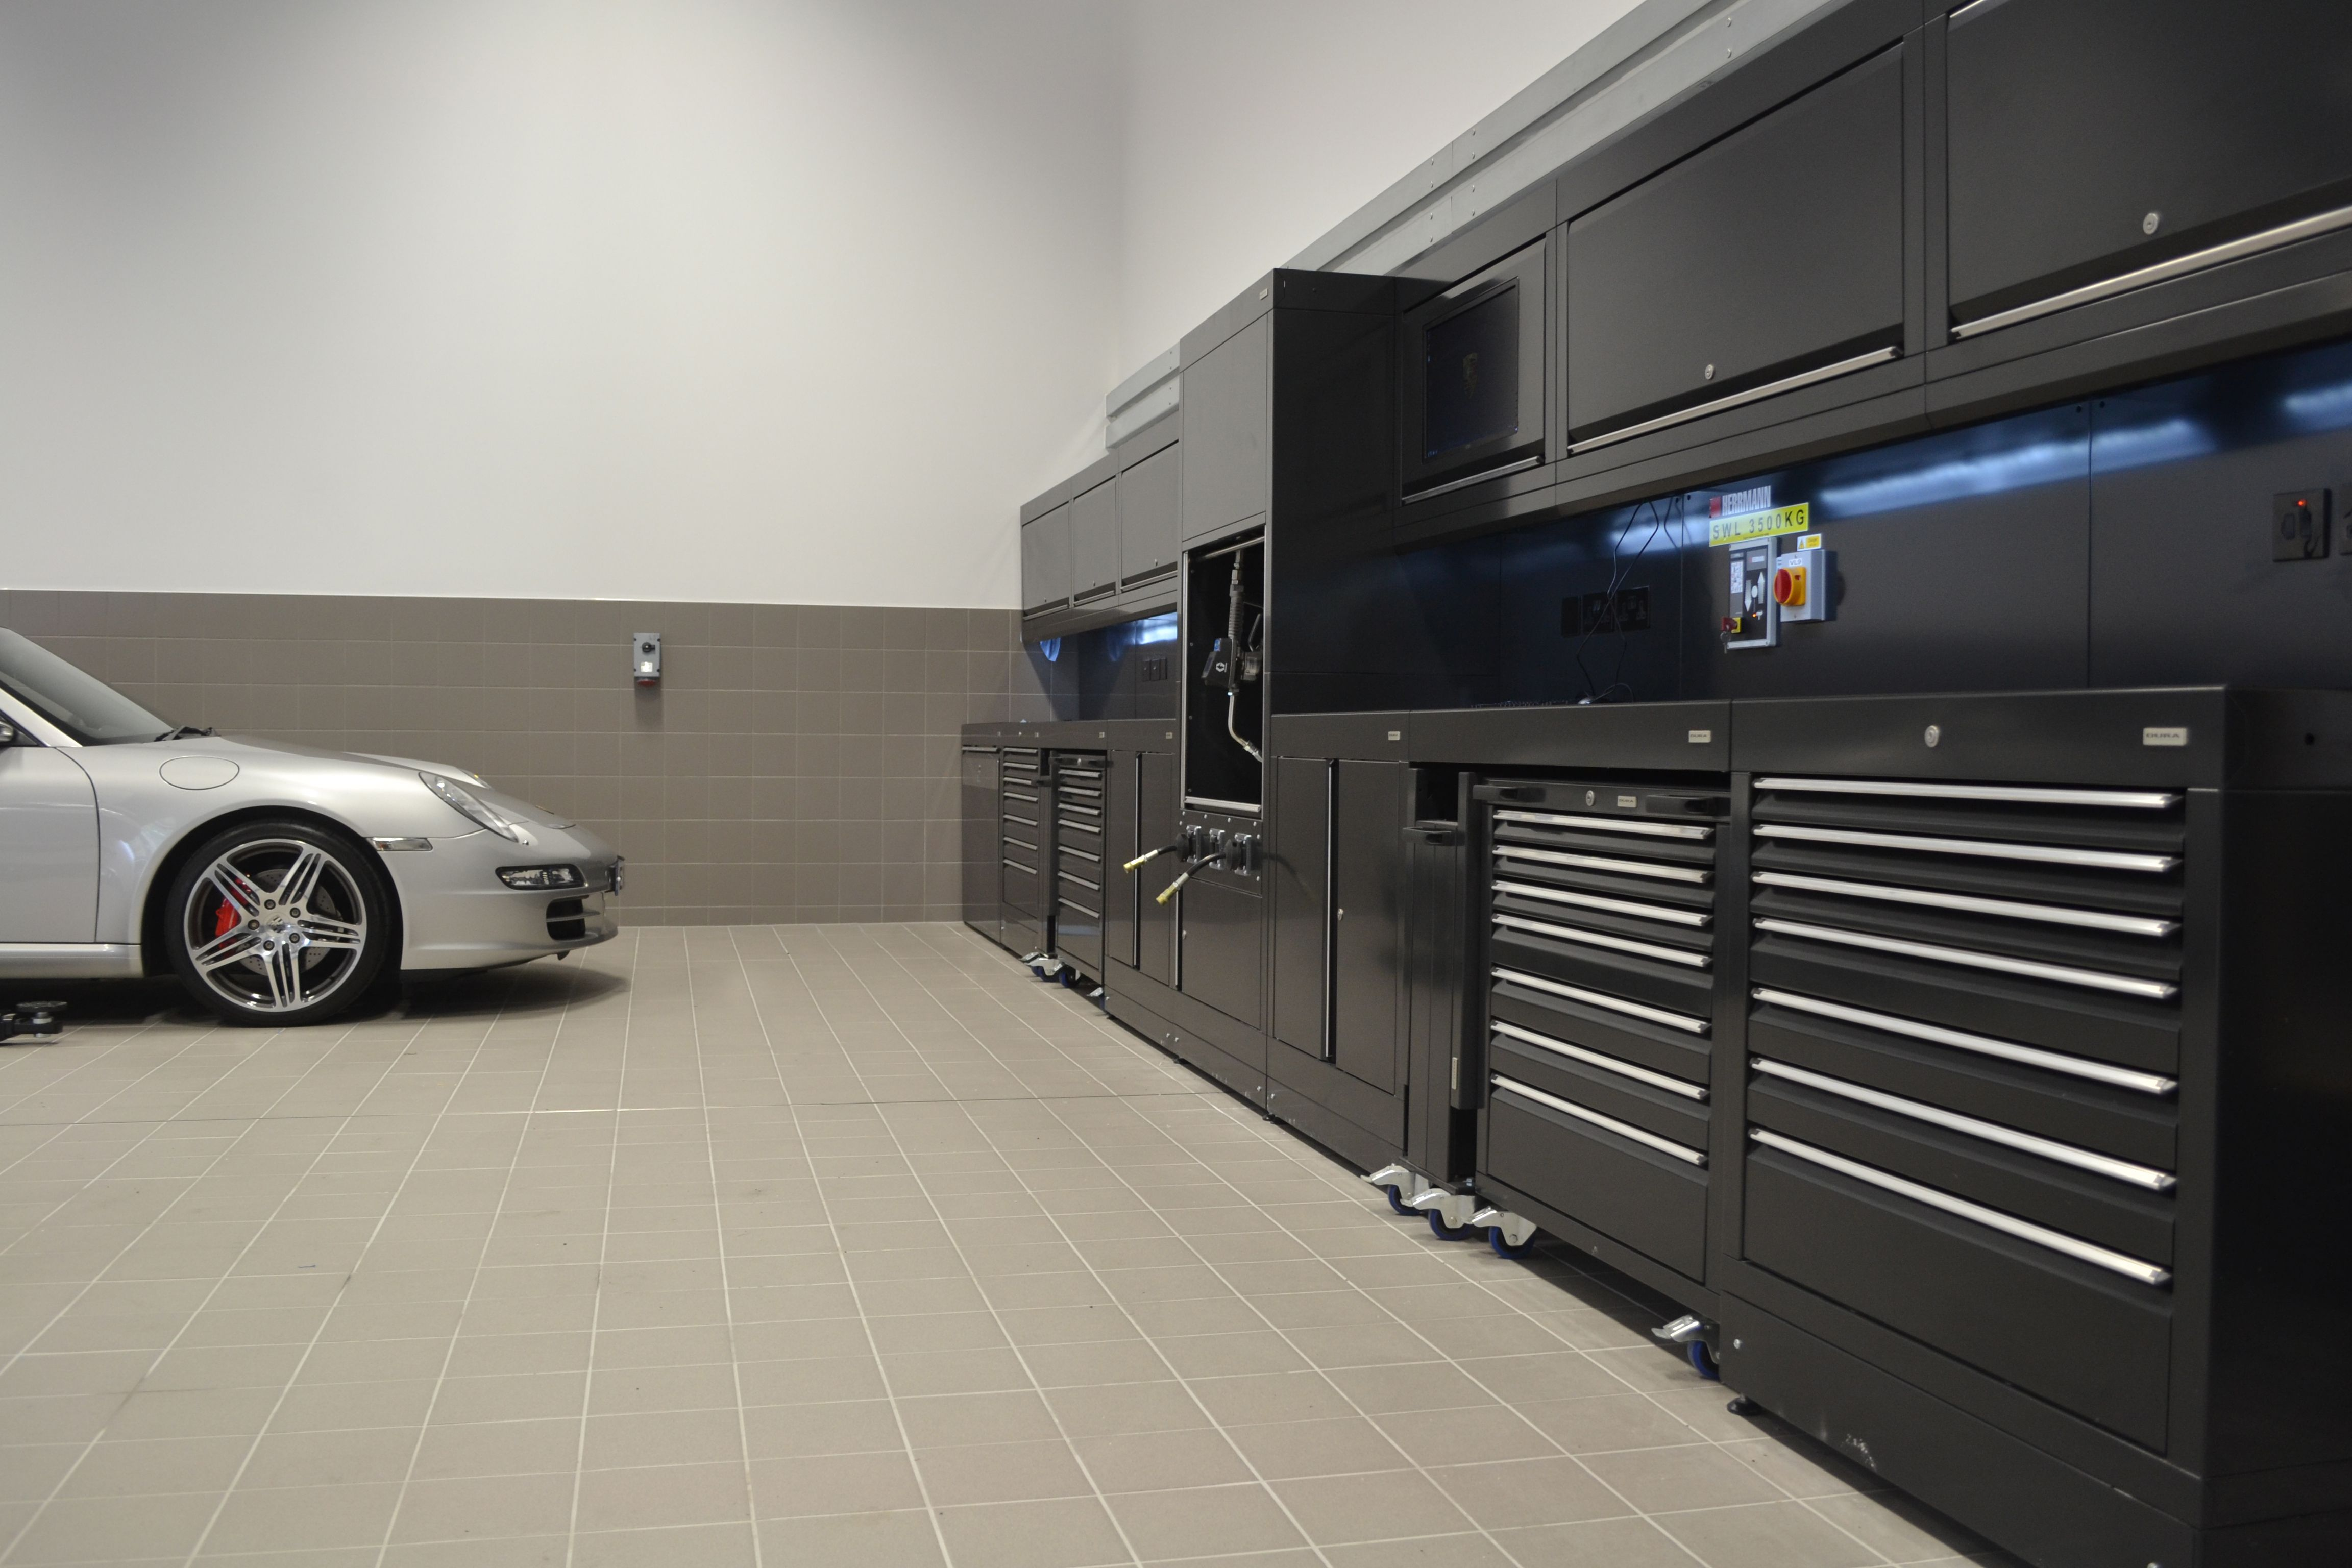 Our Porsche project in Tewkesbury, Gloucestershire, UK